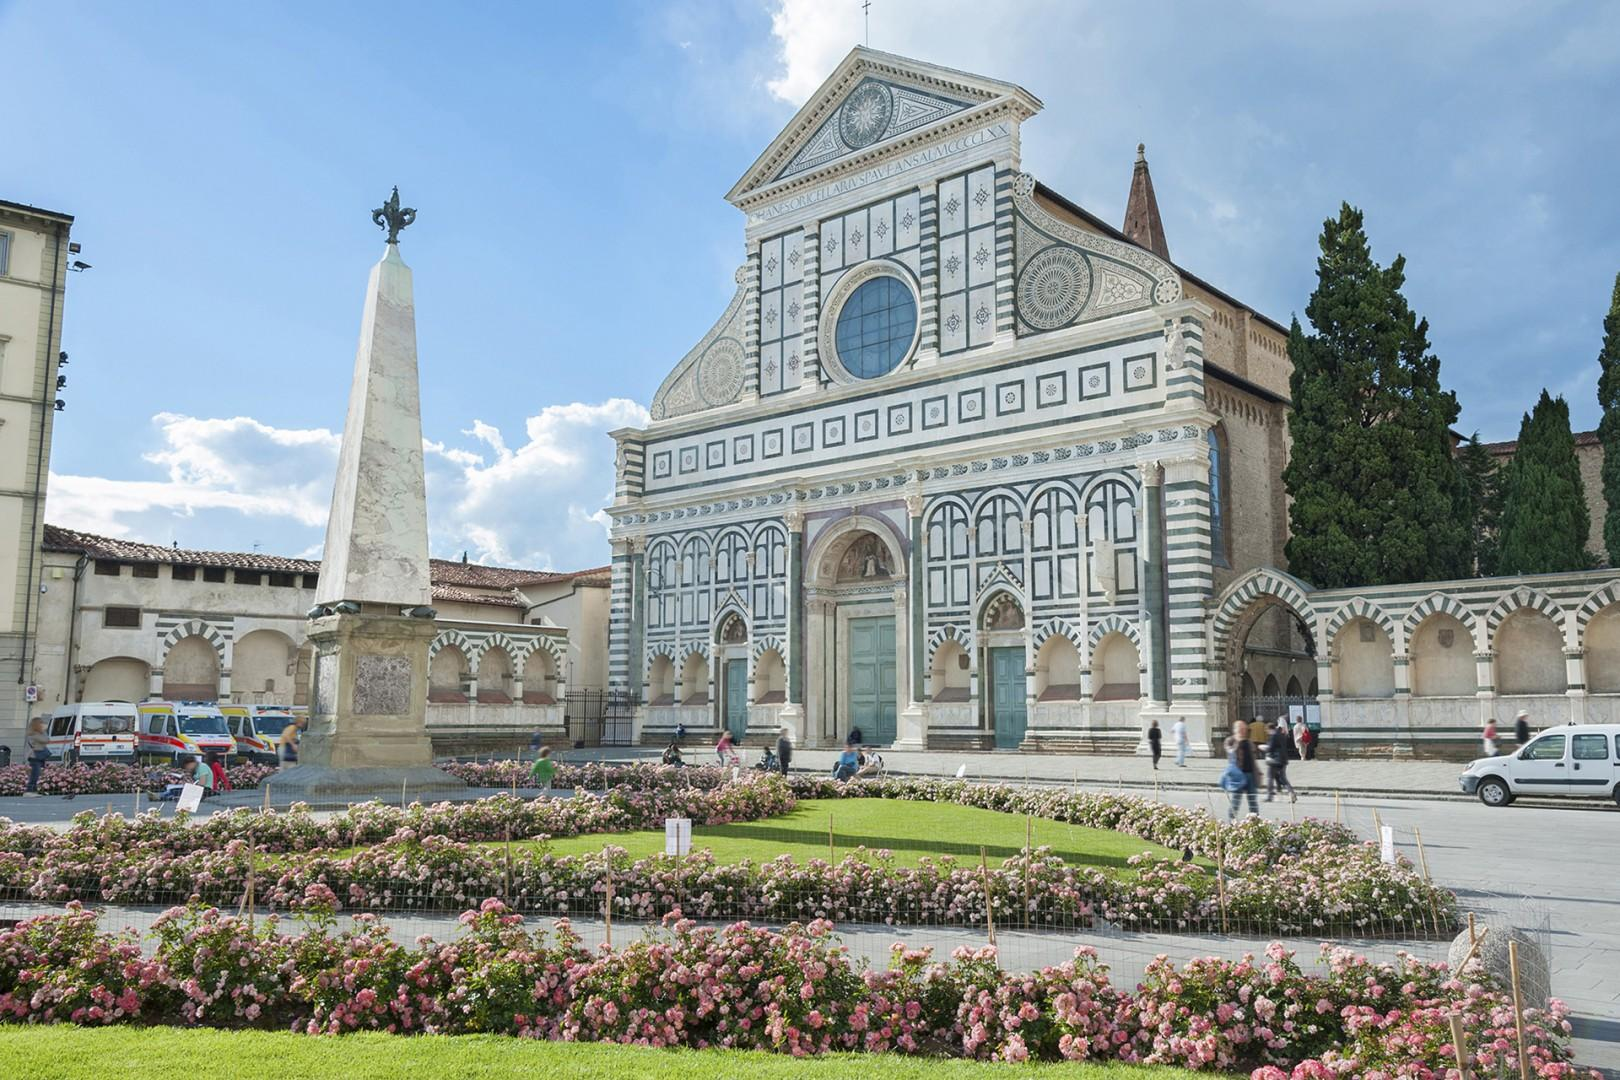 Santa Maria Novella and its piazza are very appealing. The church is a great visit.